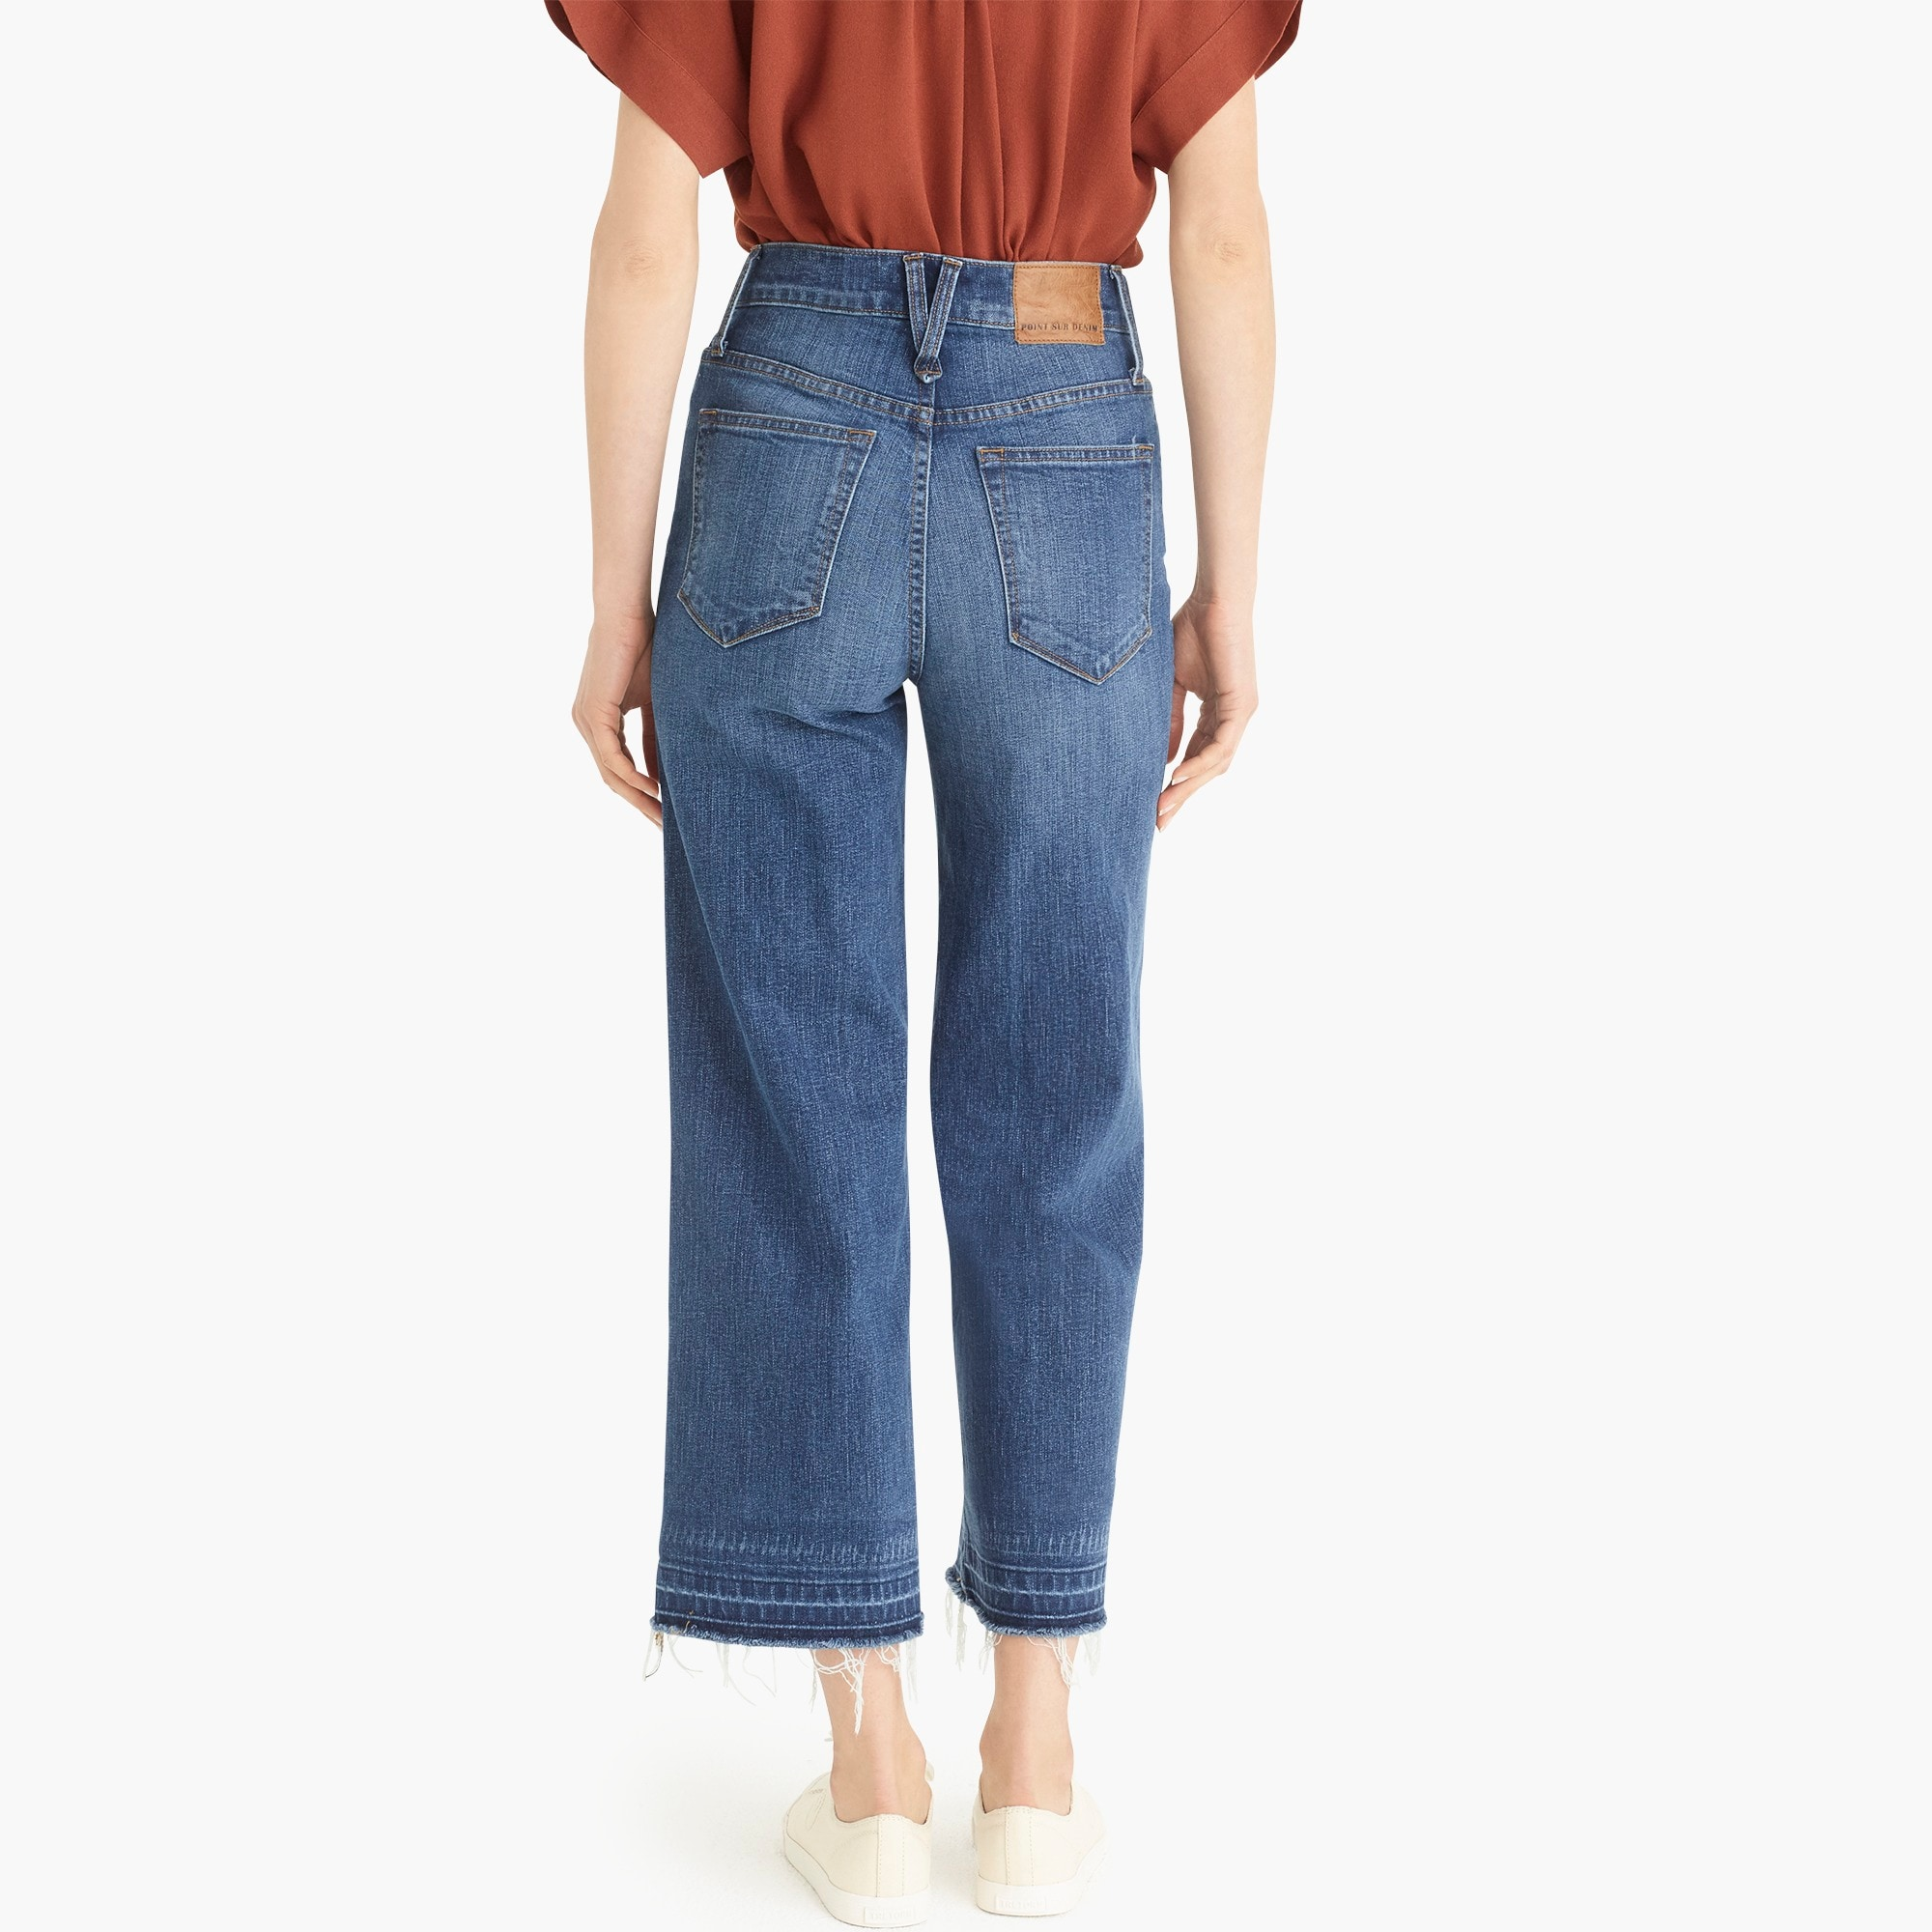 Image 6 for Point Sur wide-leg crop jean with let-down hem